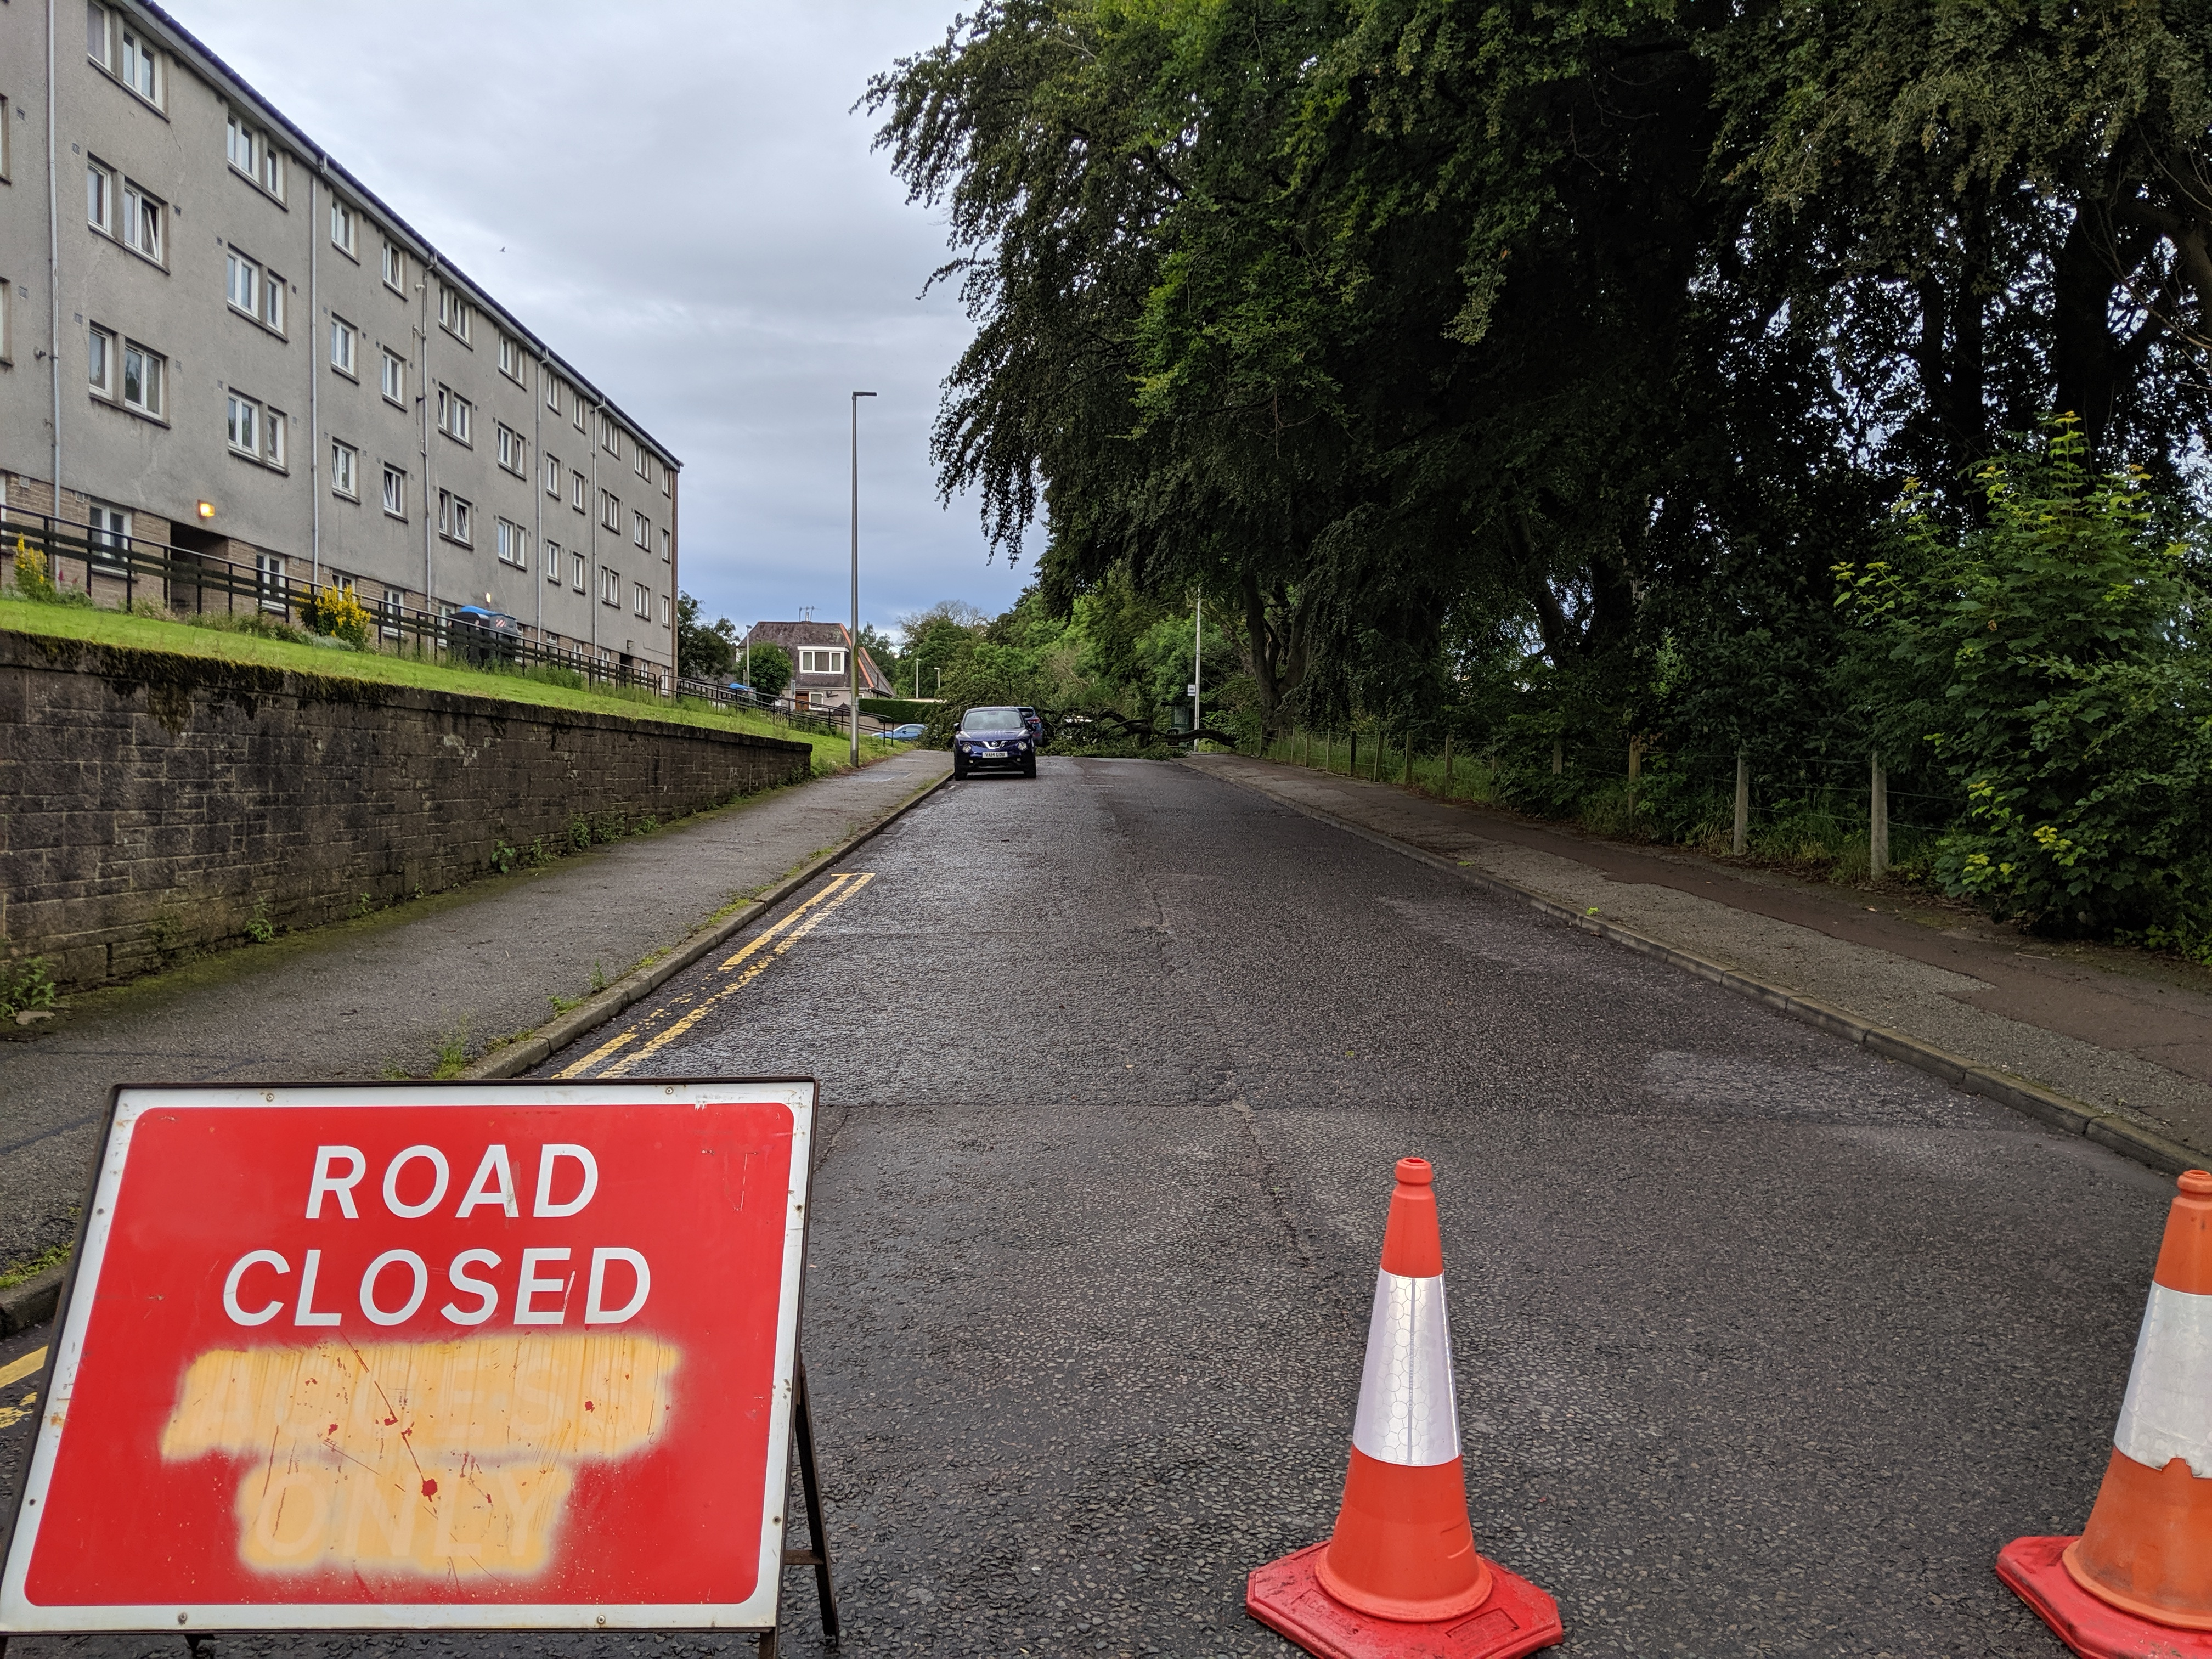 The road is currently closed. Picture by Emma Morrice.